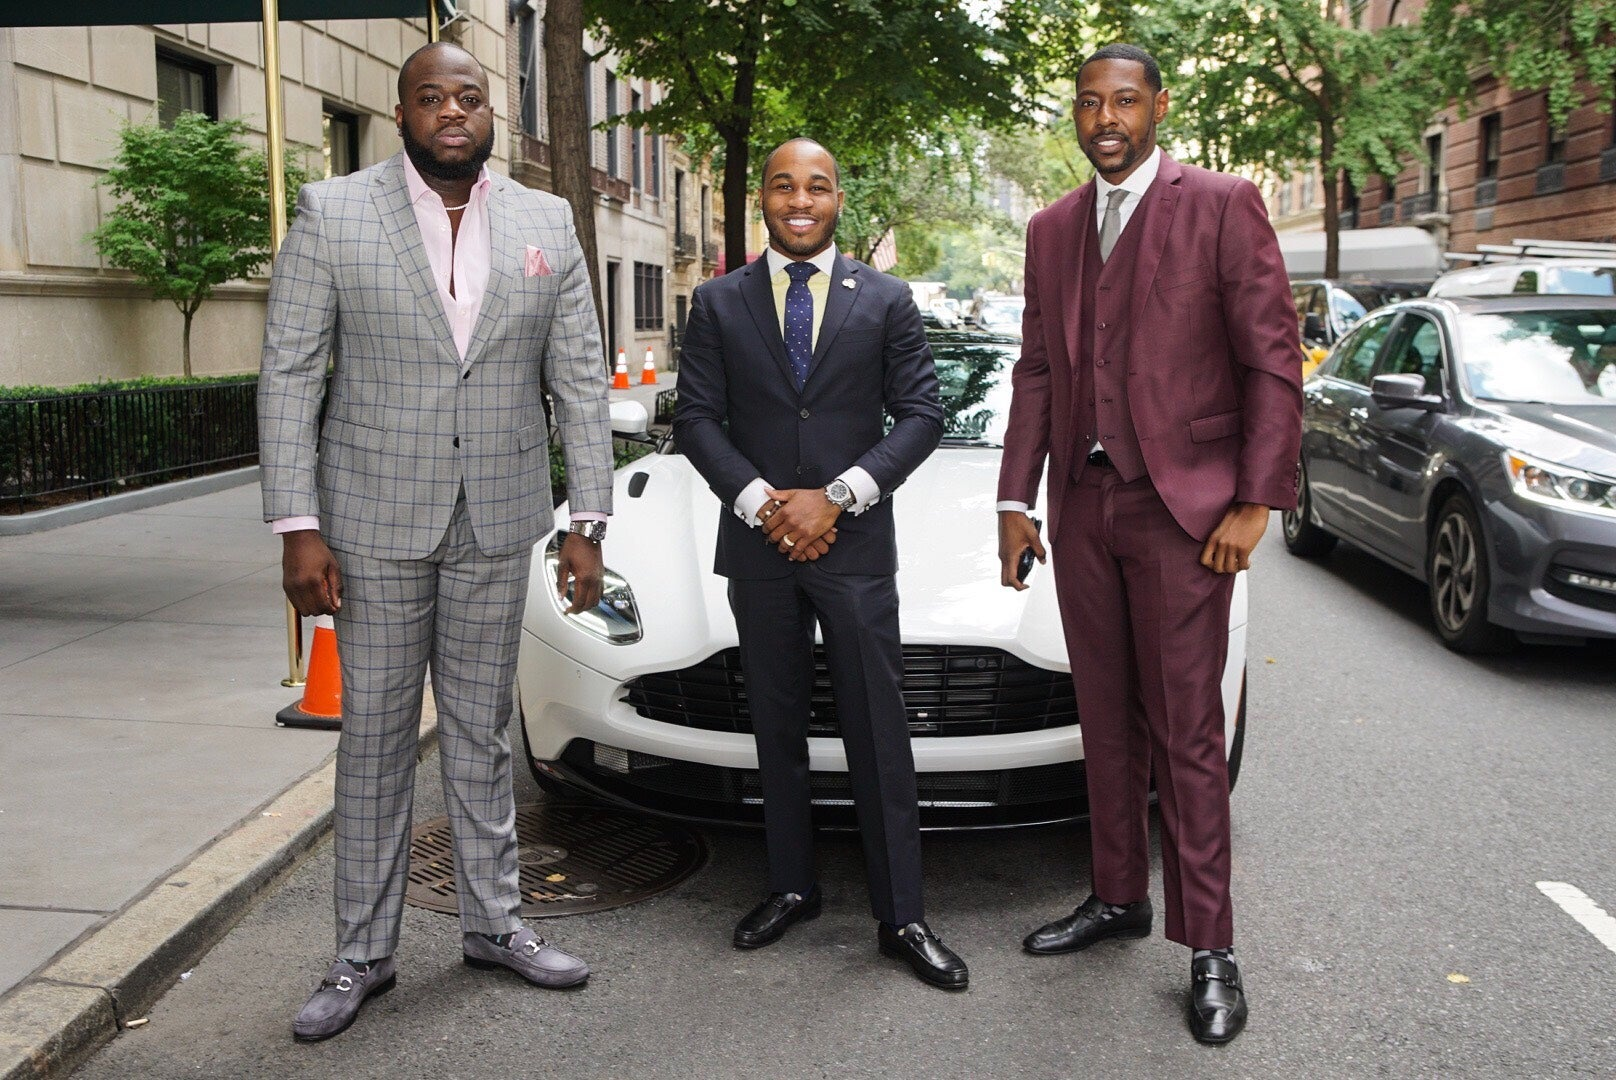 How These 3 Millennial Black Men Built A Million-Dollar Automotive Business In 1 Year